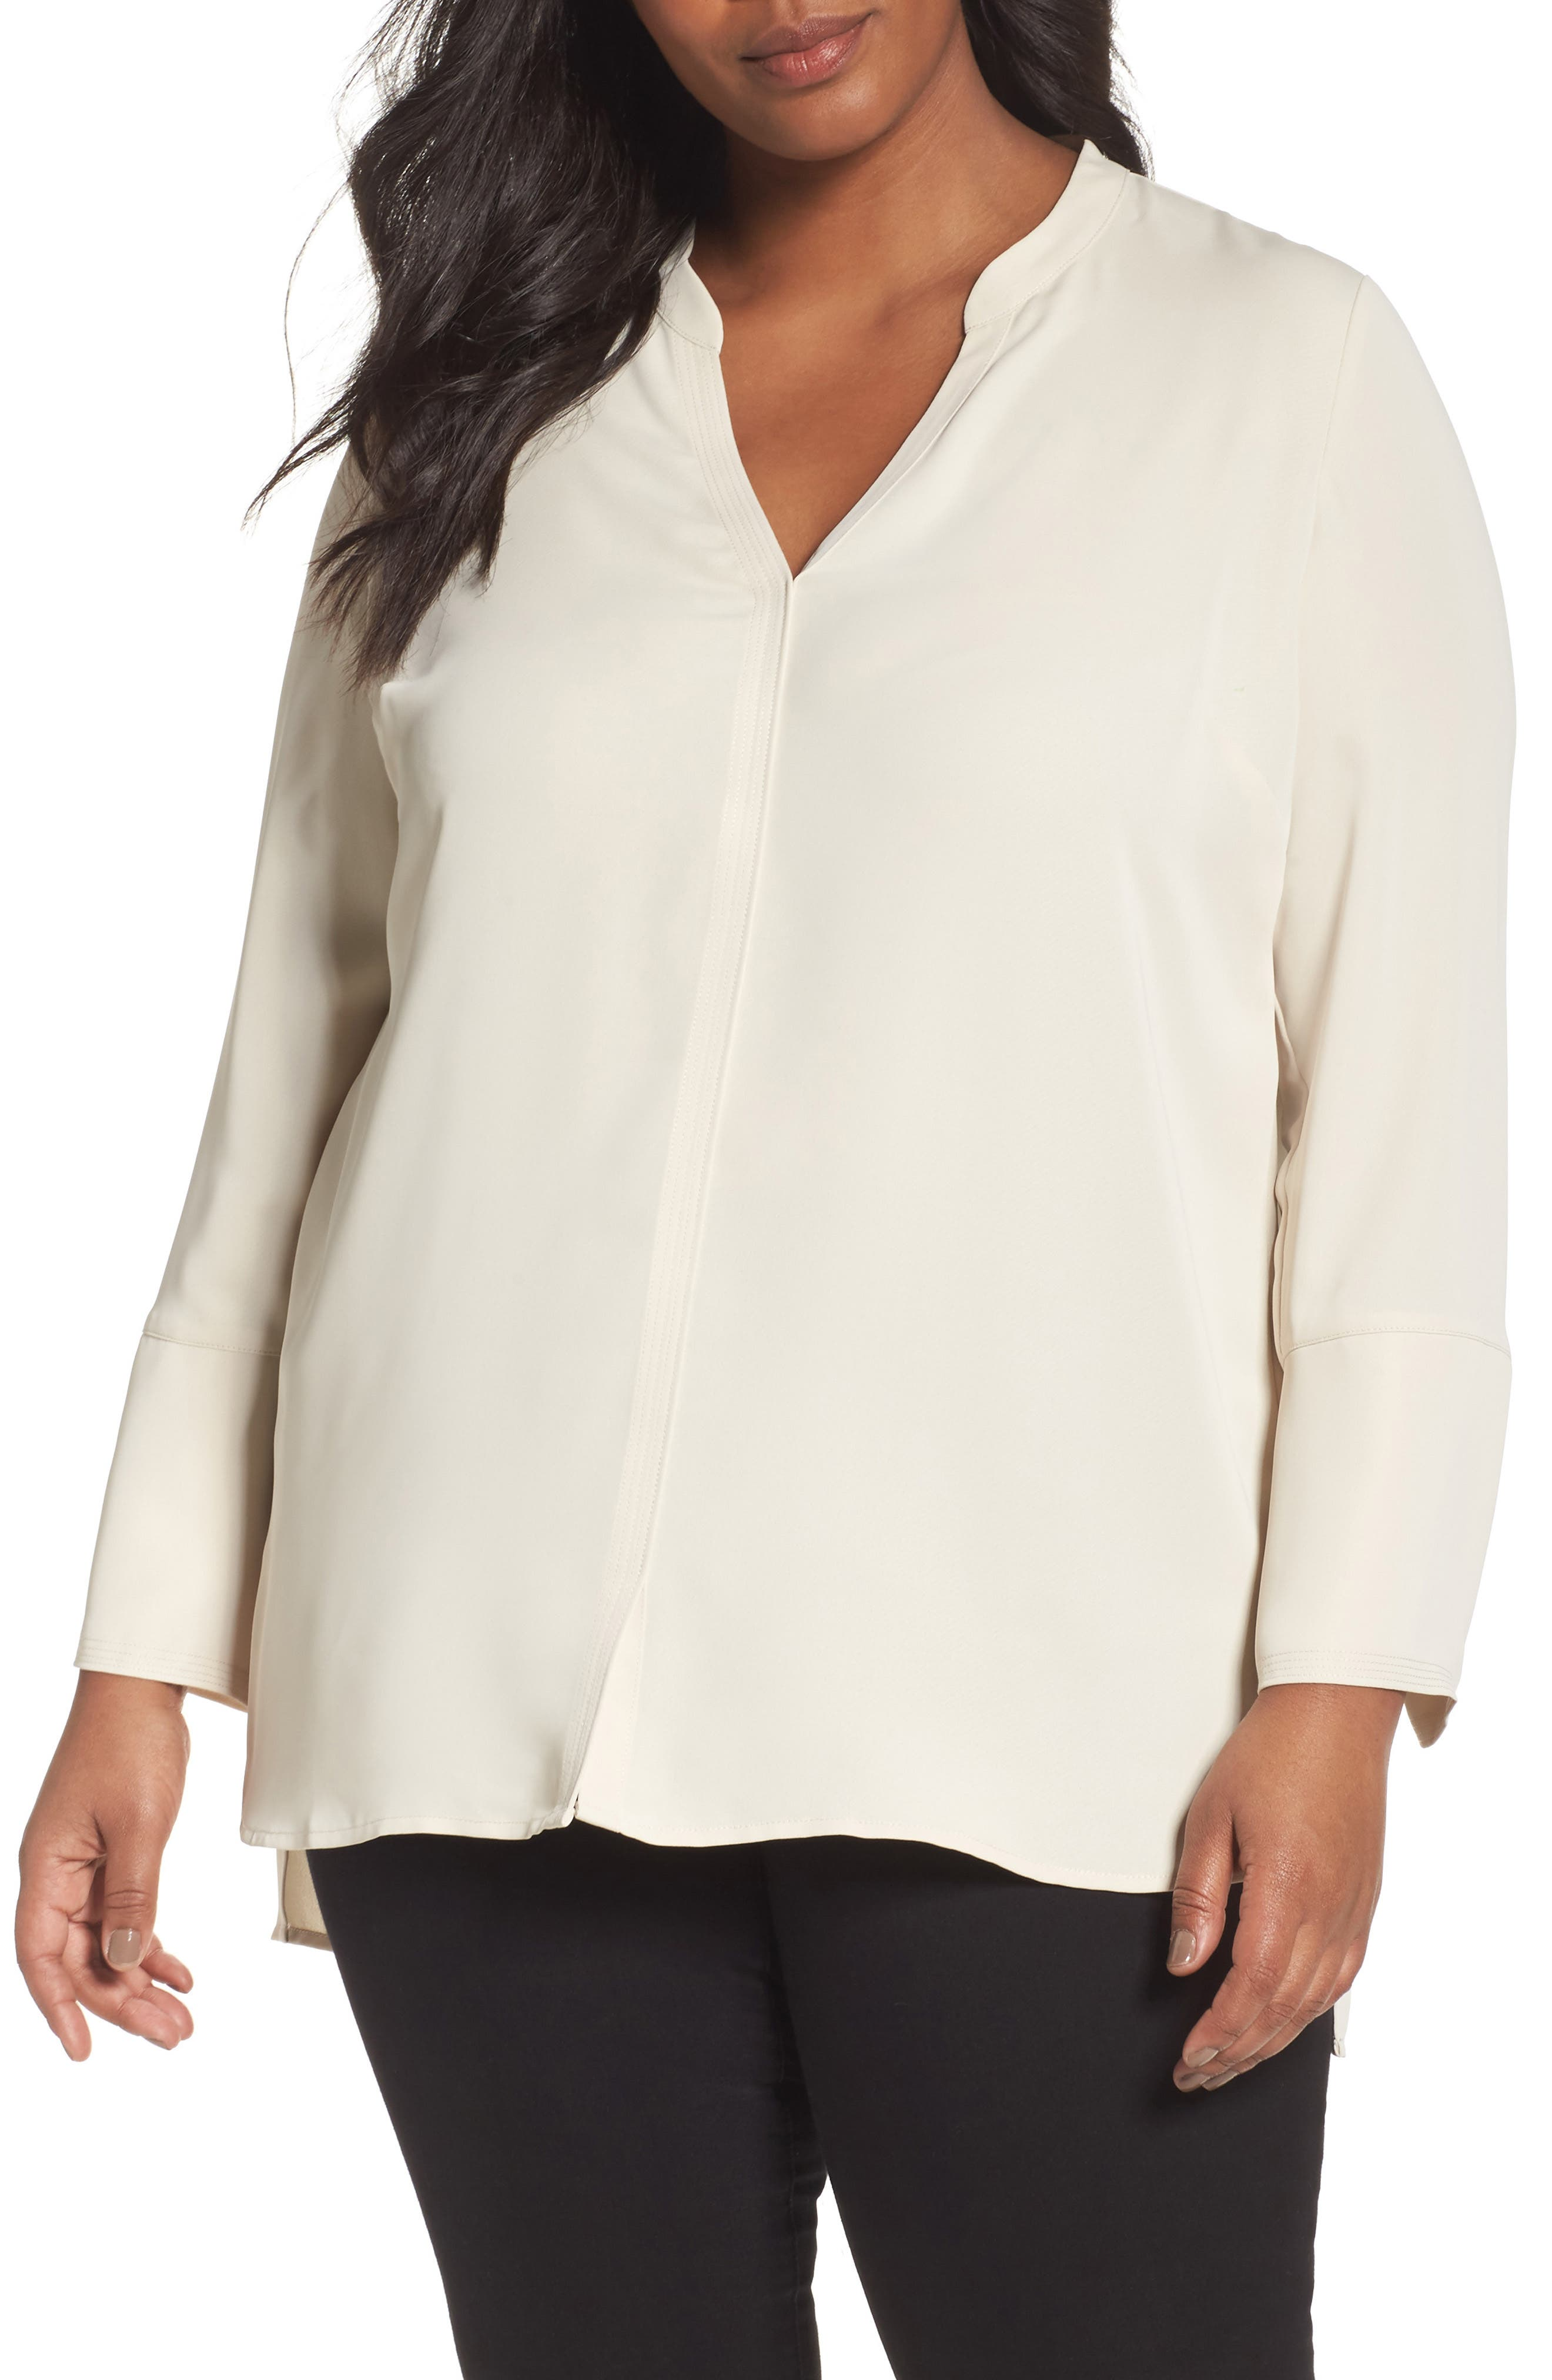 Alternate Image 1 Selected - NIC+ZOE Endless Empire Matte Satin Blouse (Plus Size)